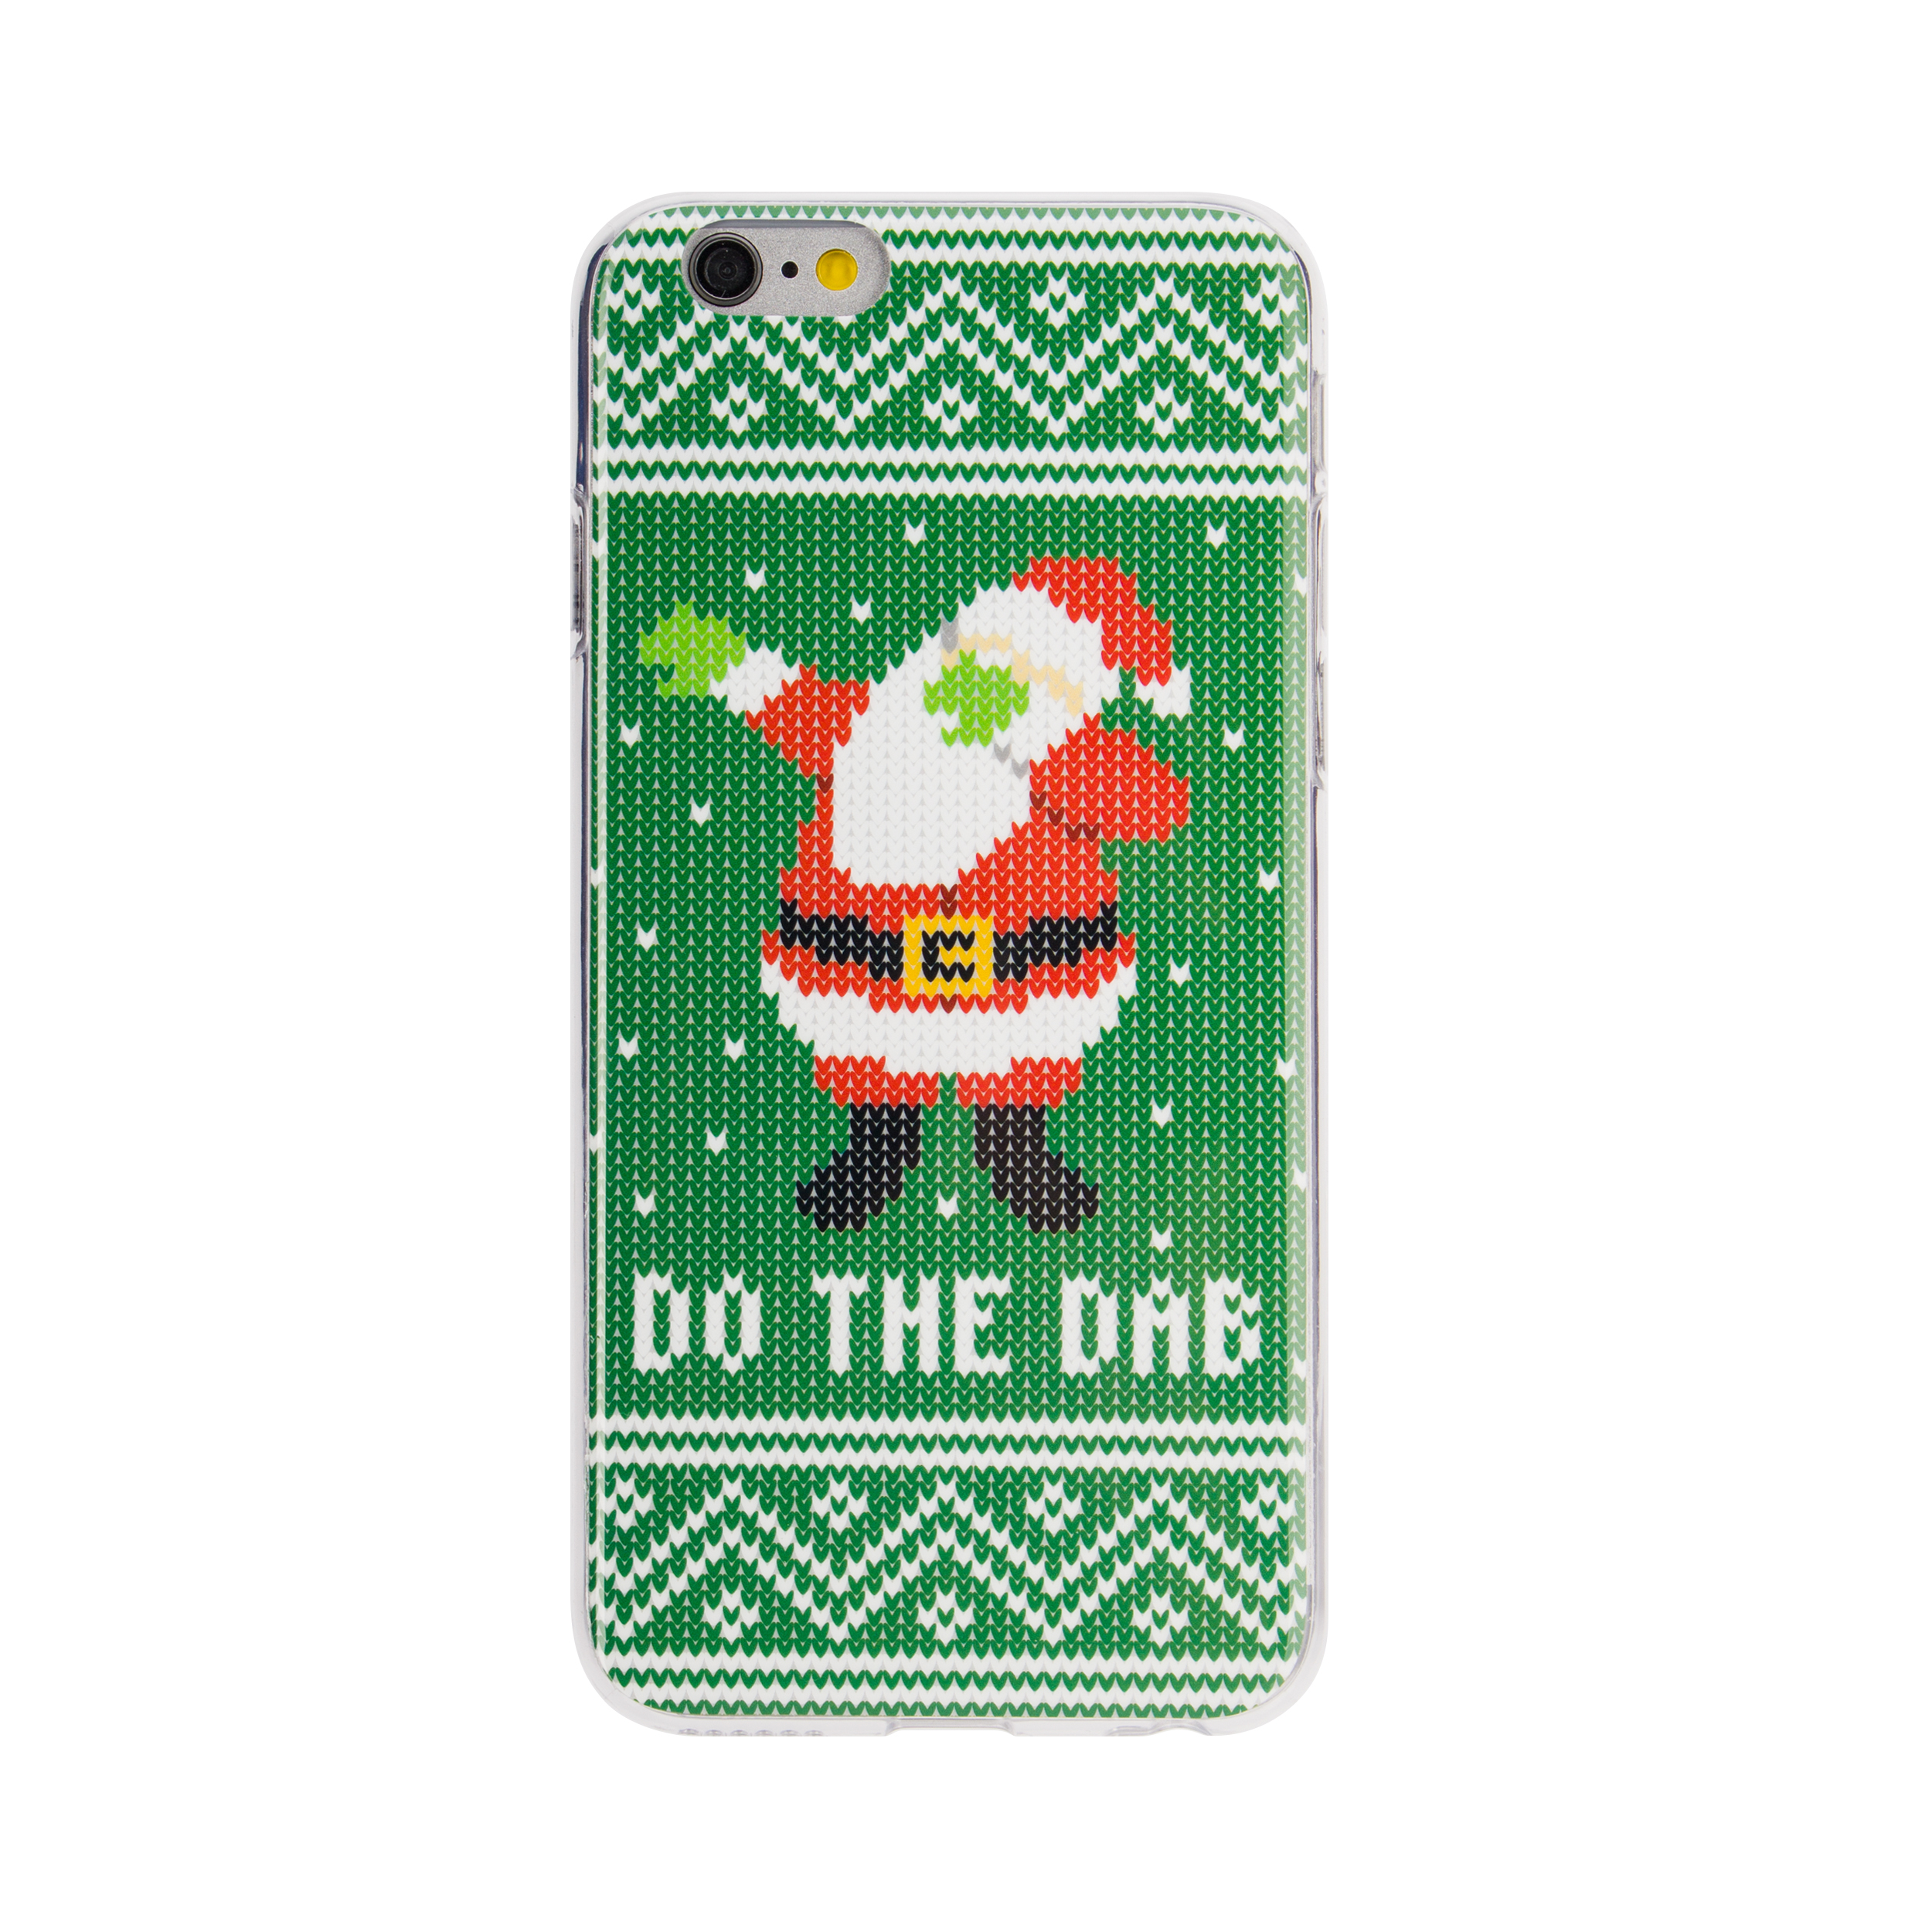 FLAVR Case Ugly Xmas Sweater Do The Dab for iPhone 6/6s colourful